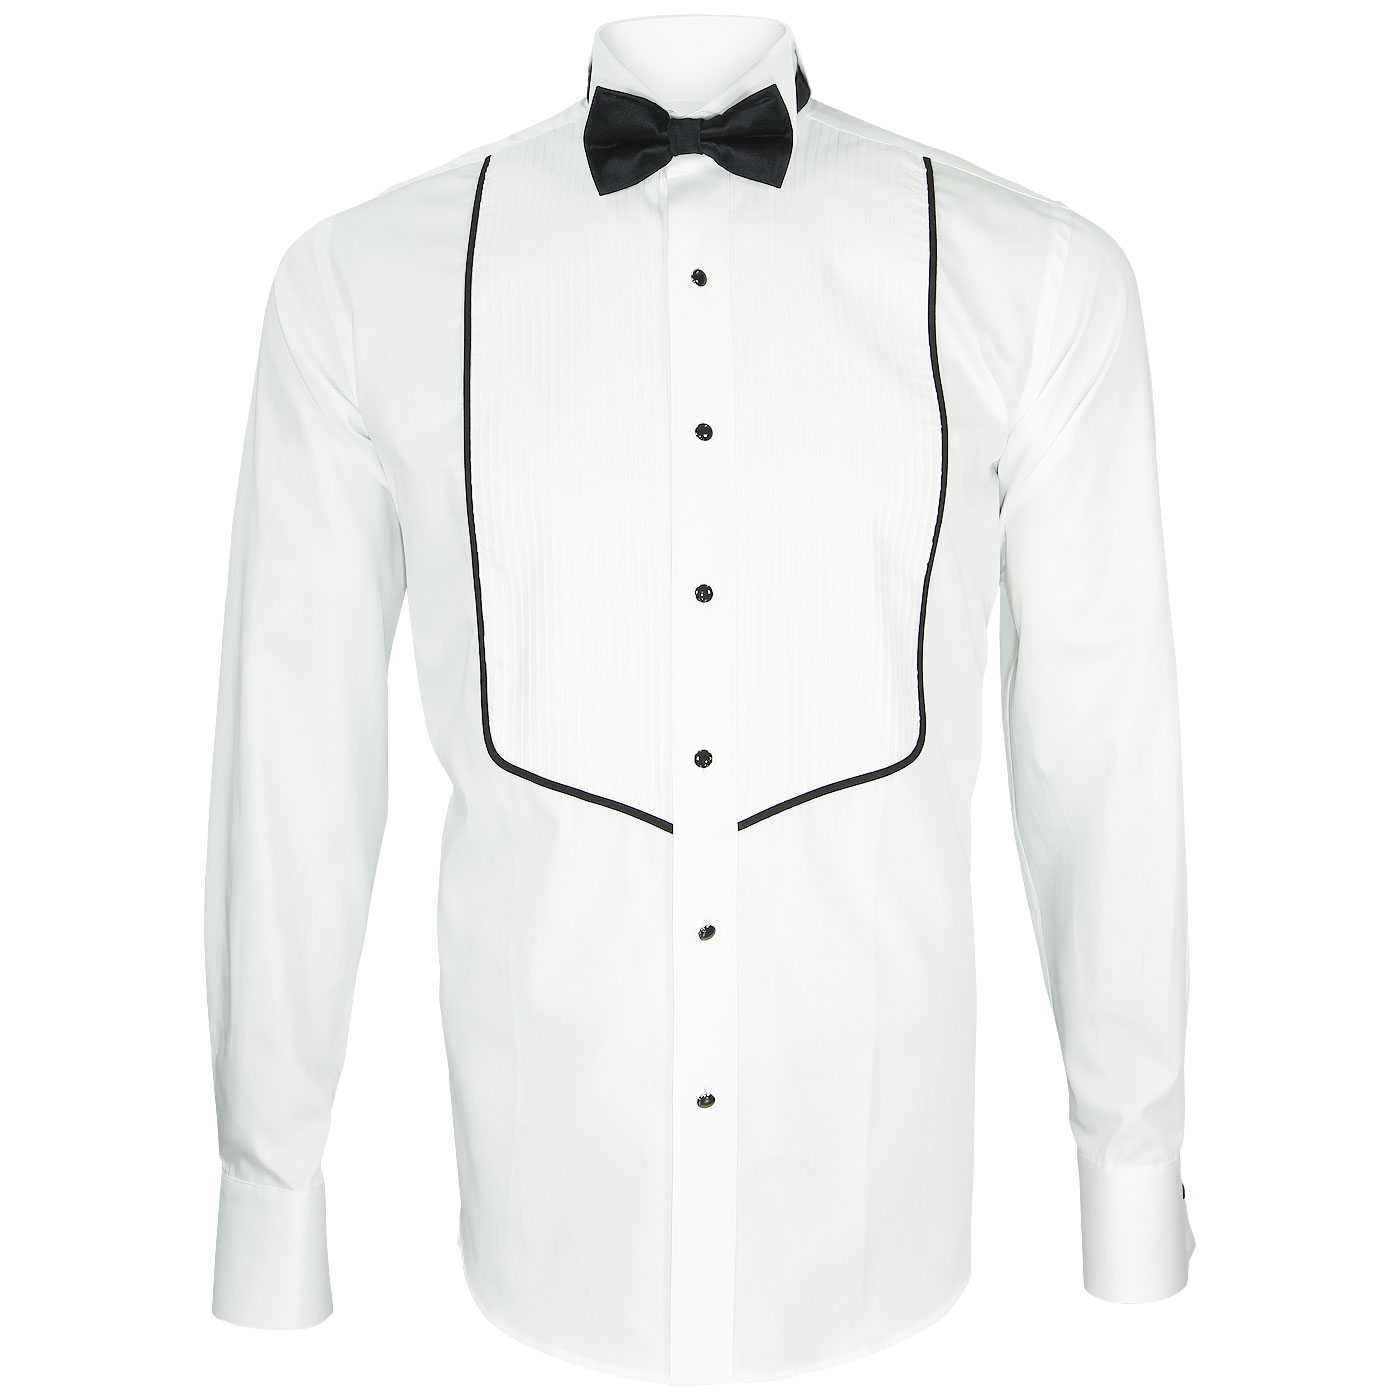 Accessories for Men's Shirt the collection Webmenshirts